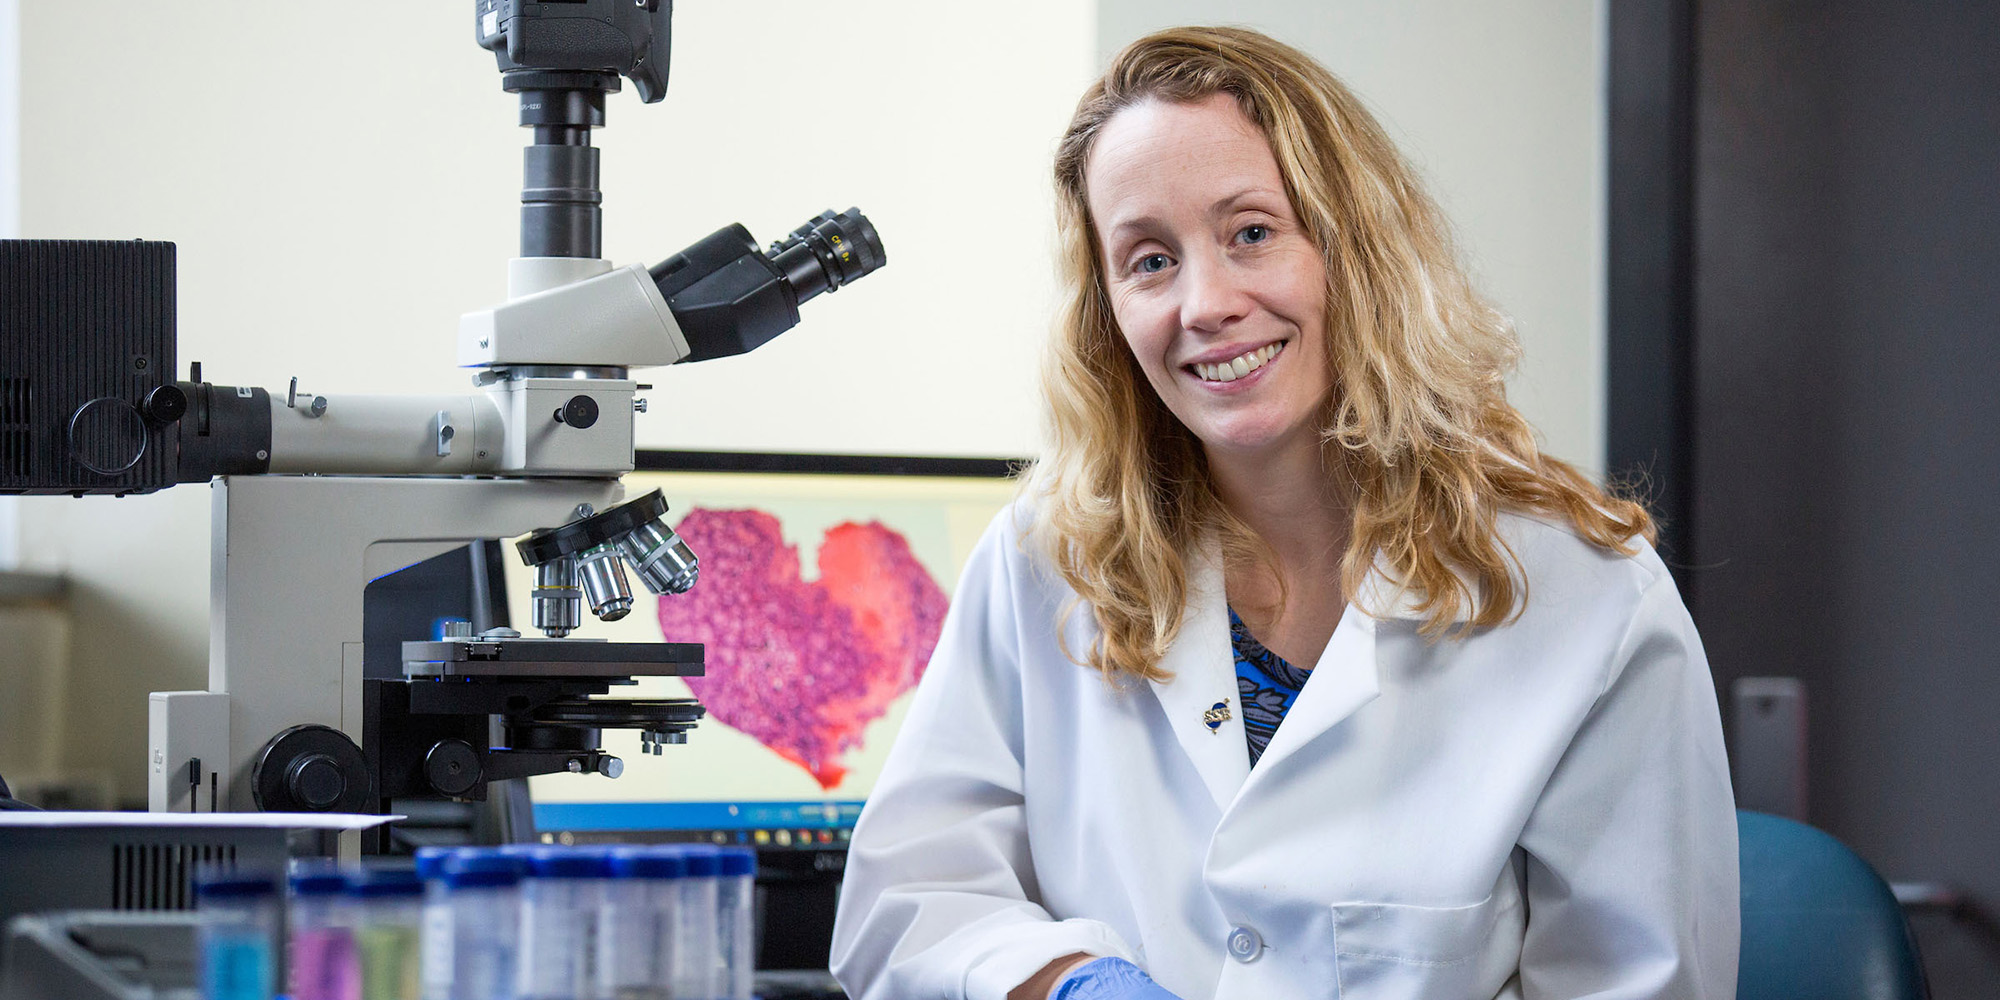 Aileen Keating seated by a microscope in a laboratory